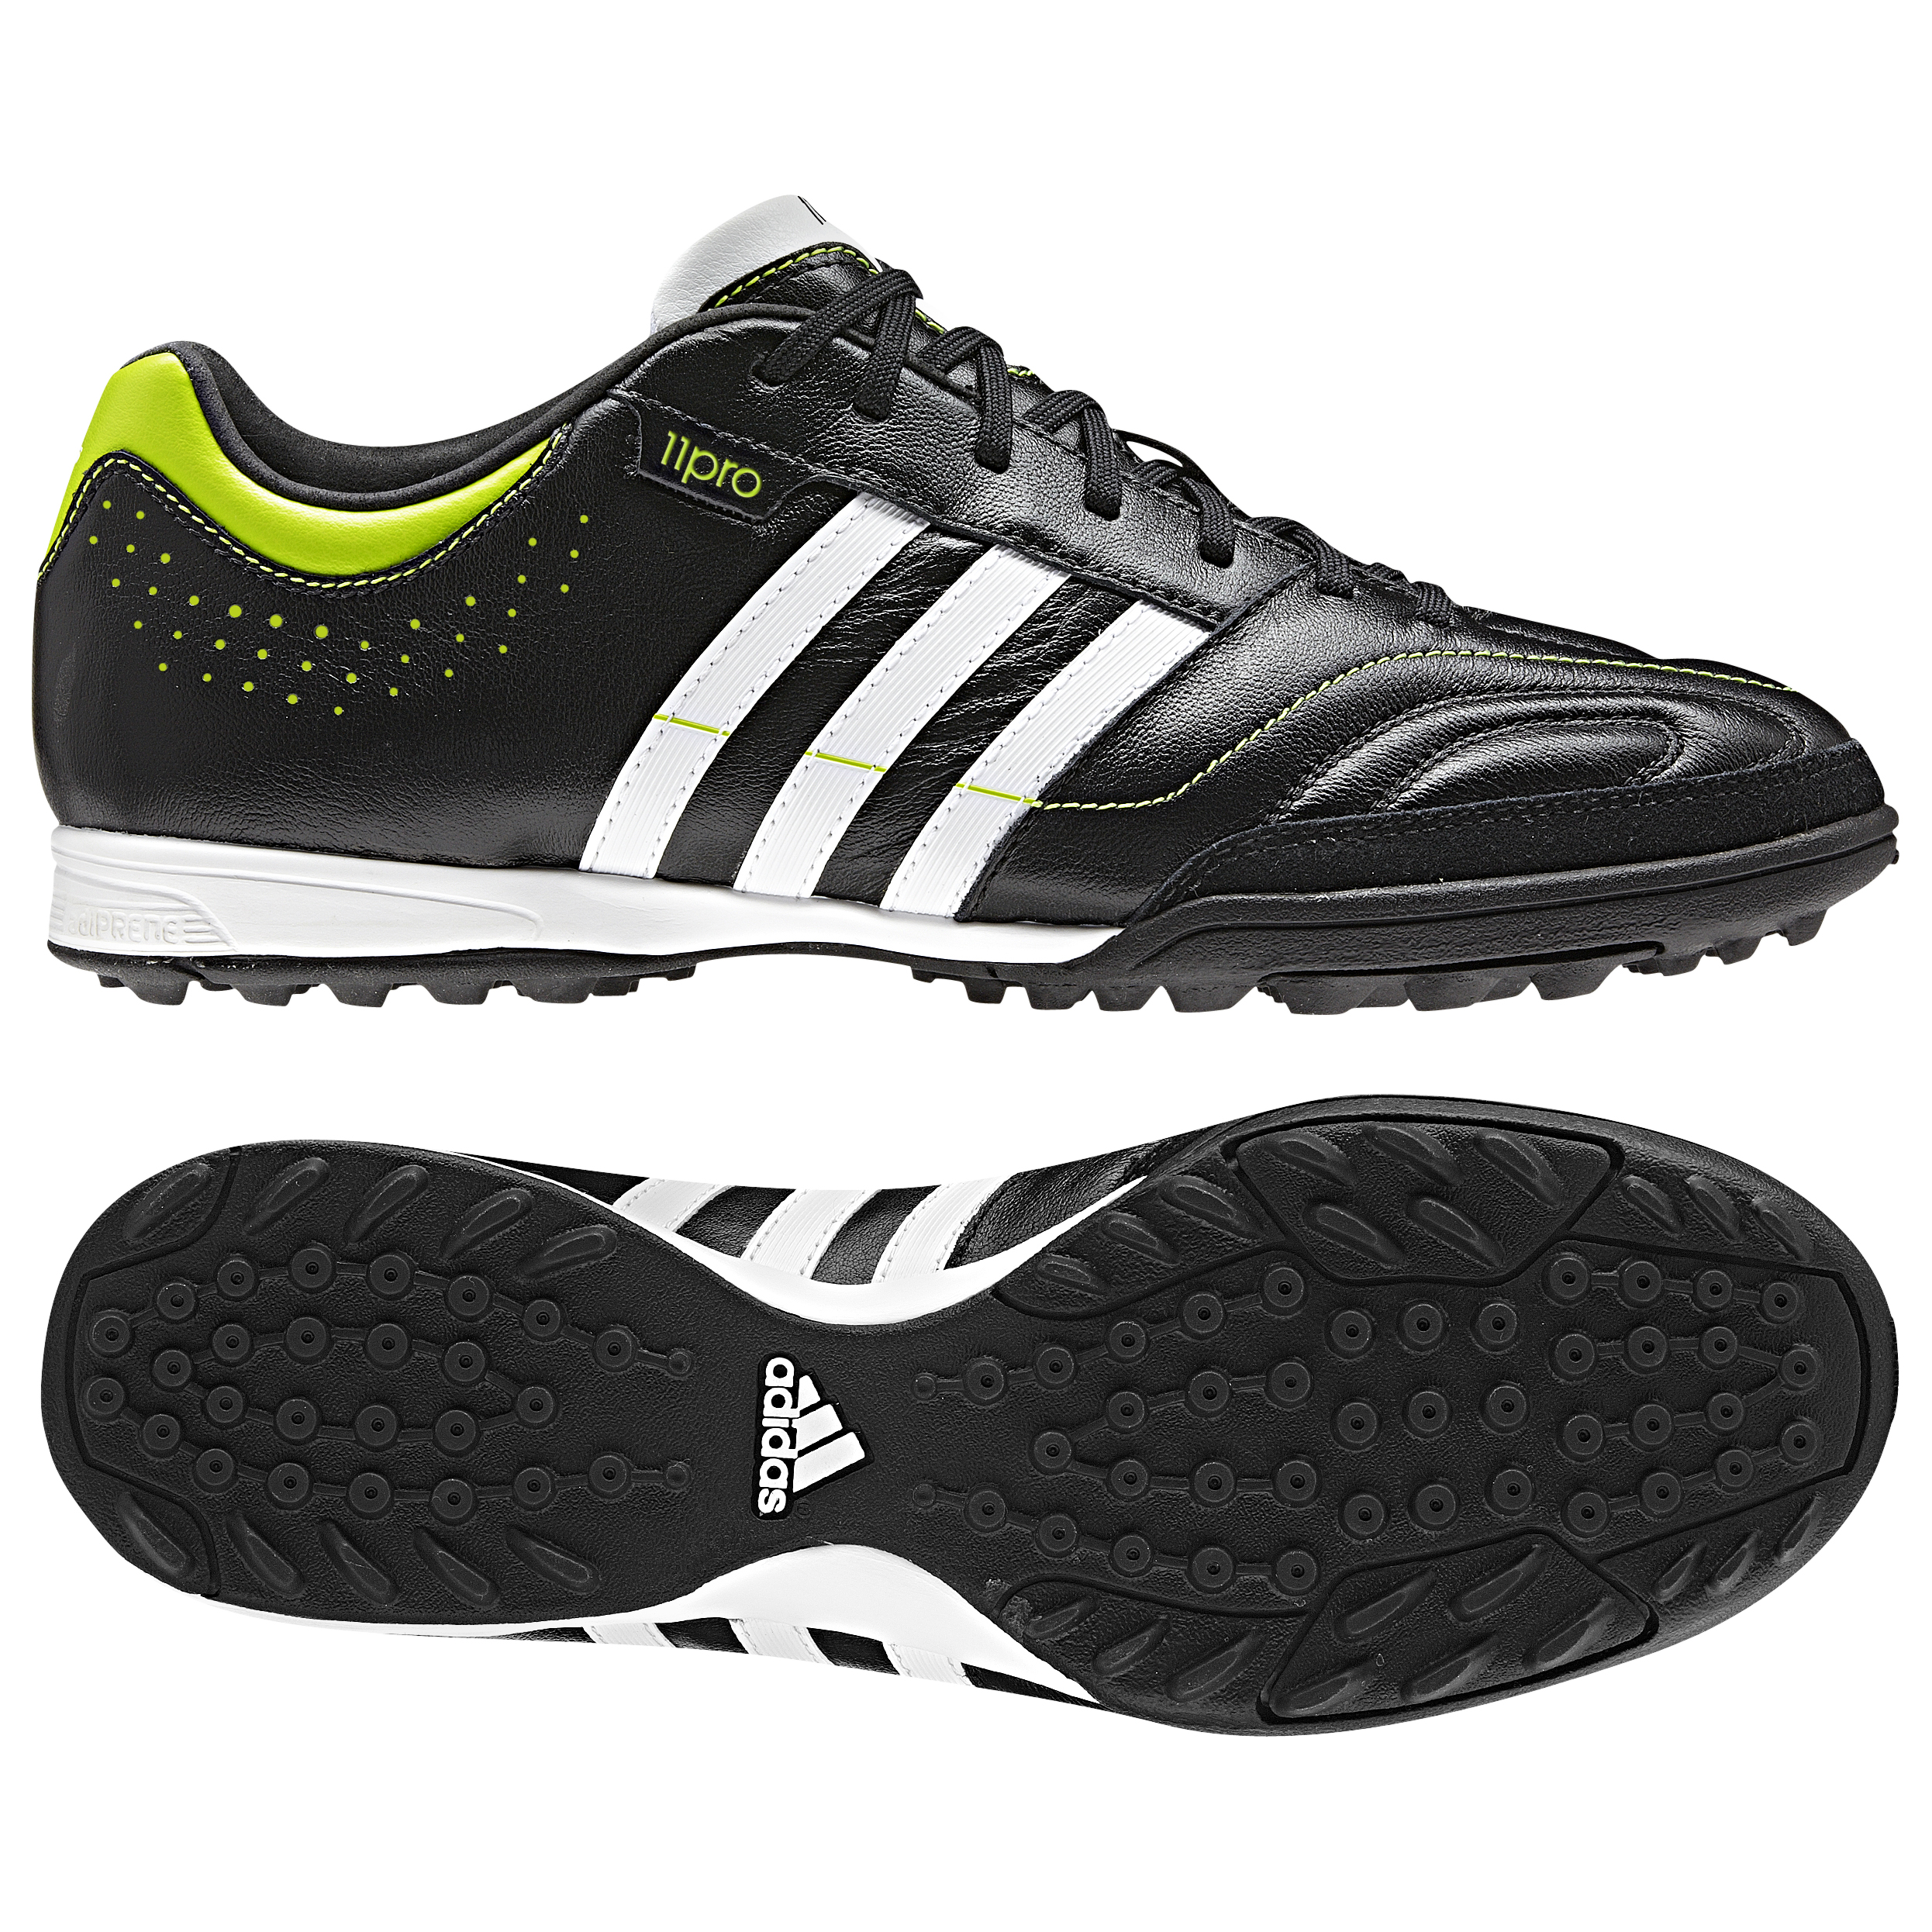 detailed pictures df1b1 cd67b adidas 11Nova TRX Astro Turf Trainers - Black 1 Running White Slime. for